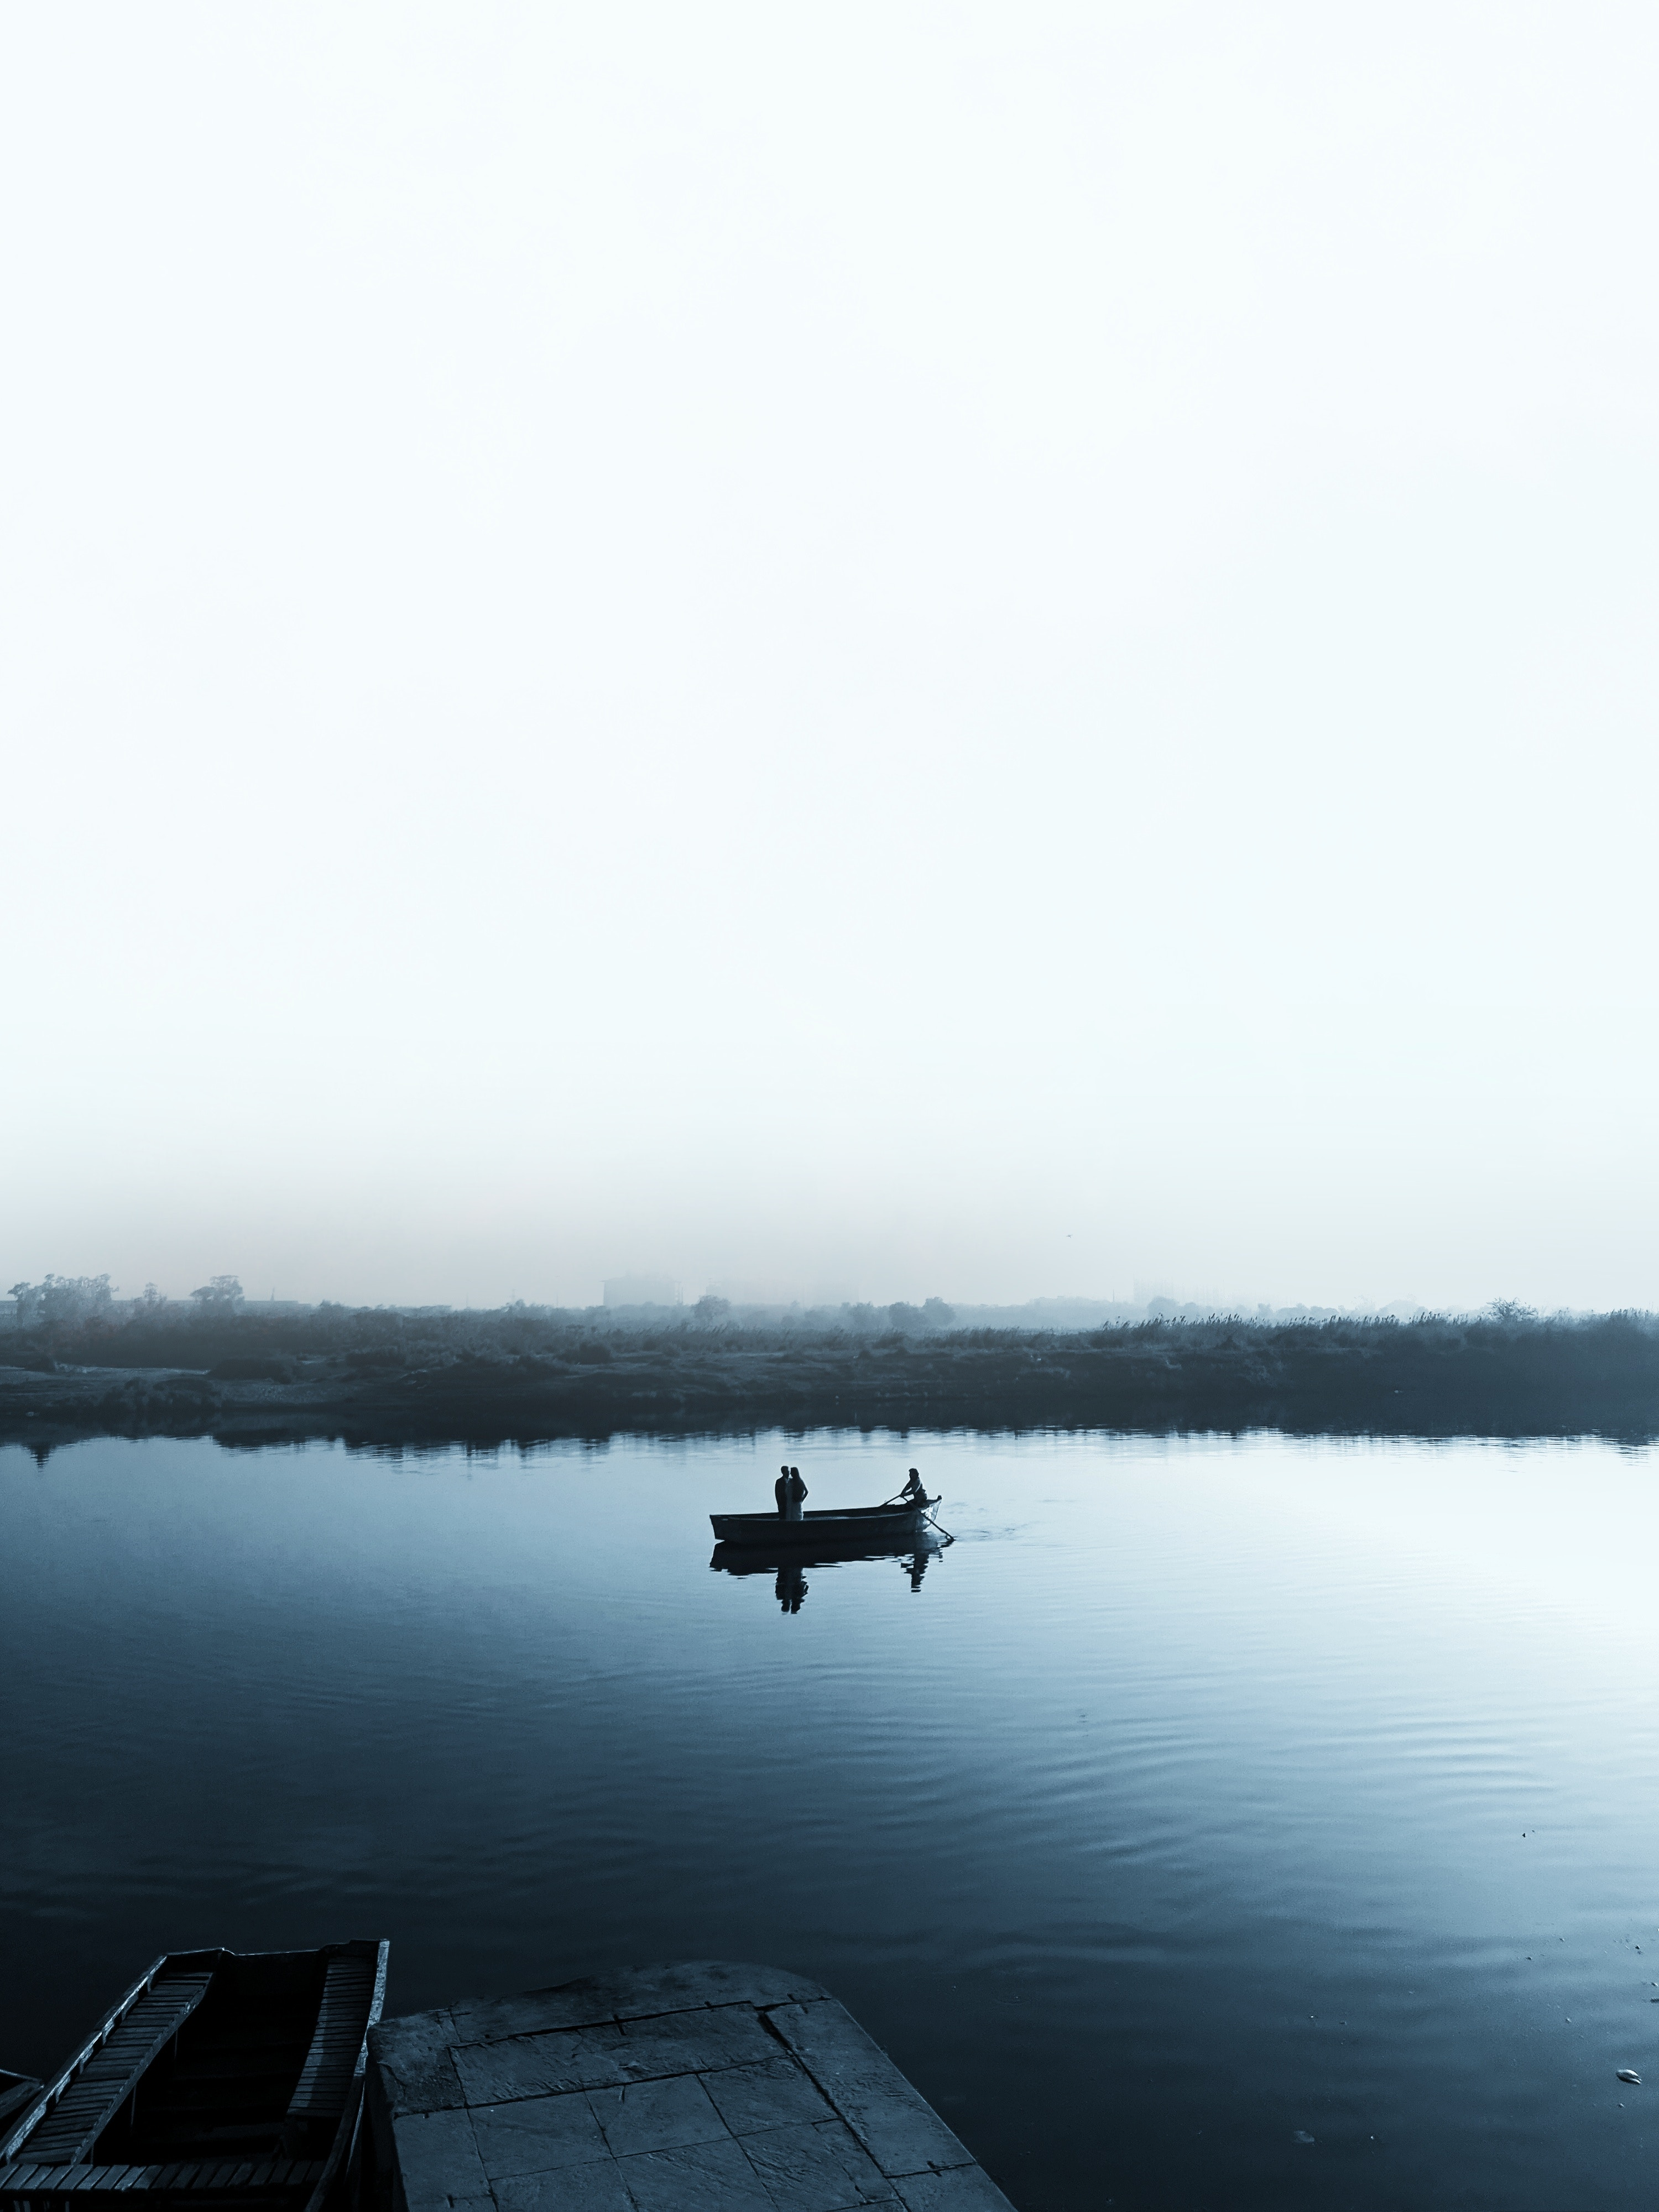 96800 download wallpaper Nature, Lake, Boat, Fog, Shore, Bank, Swim, Cloudless screensavers and pictures for free